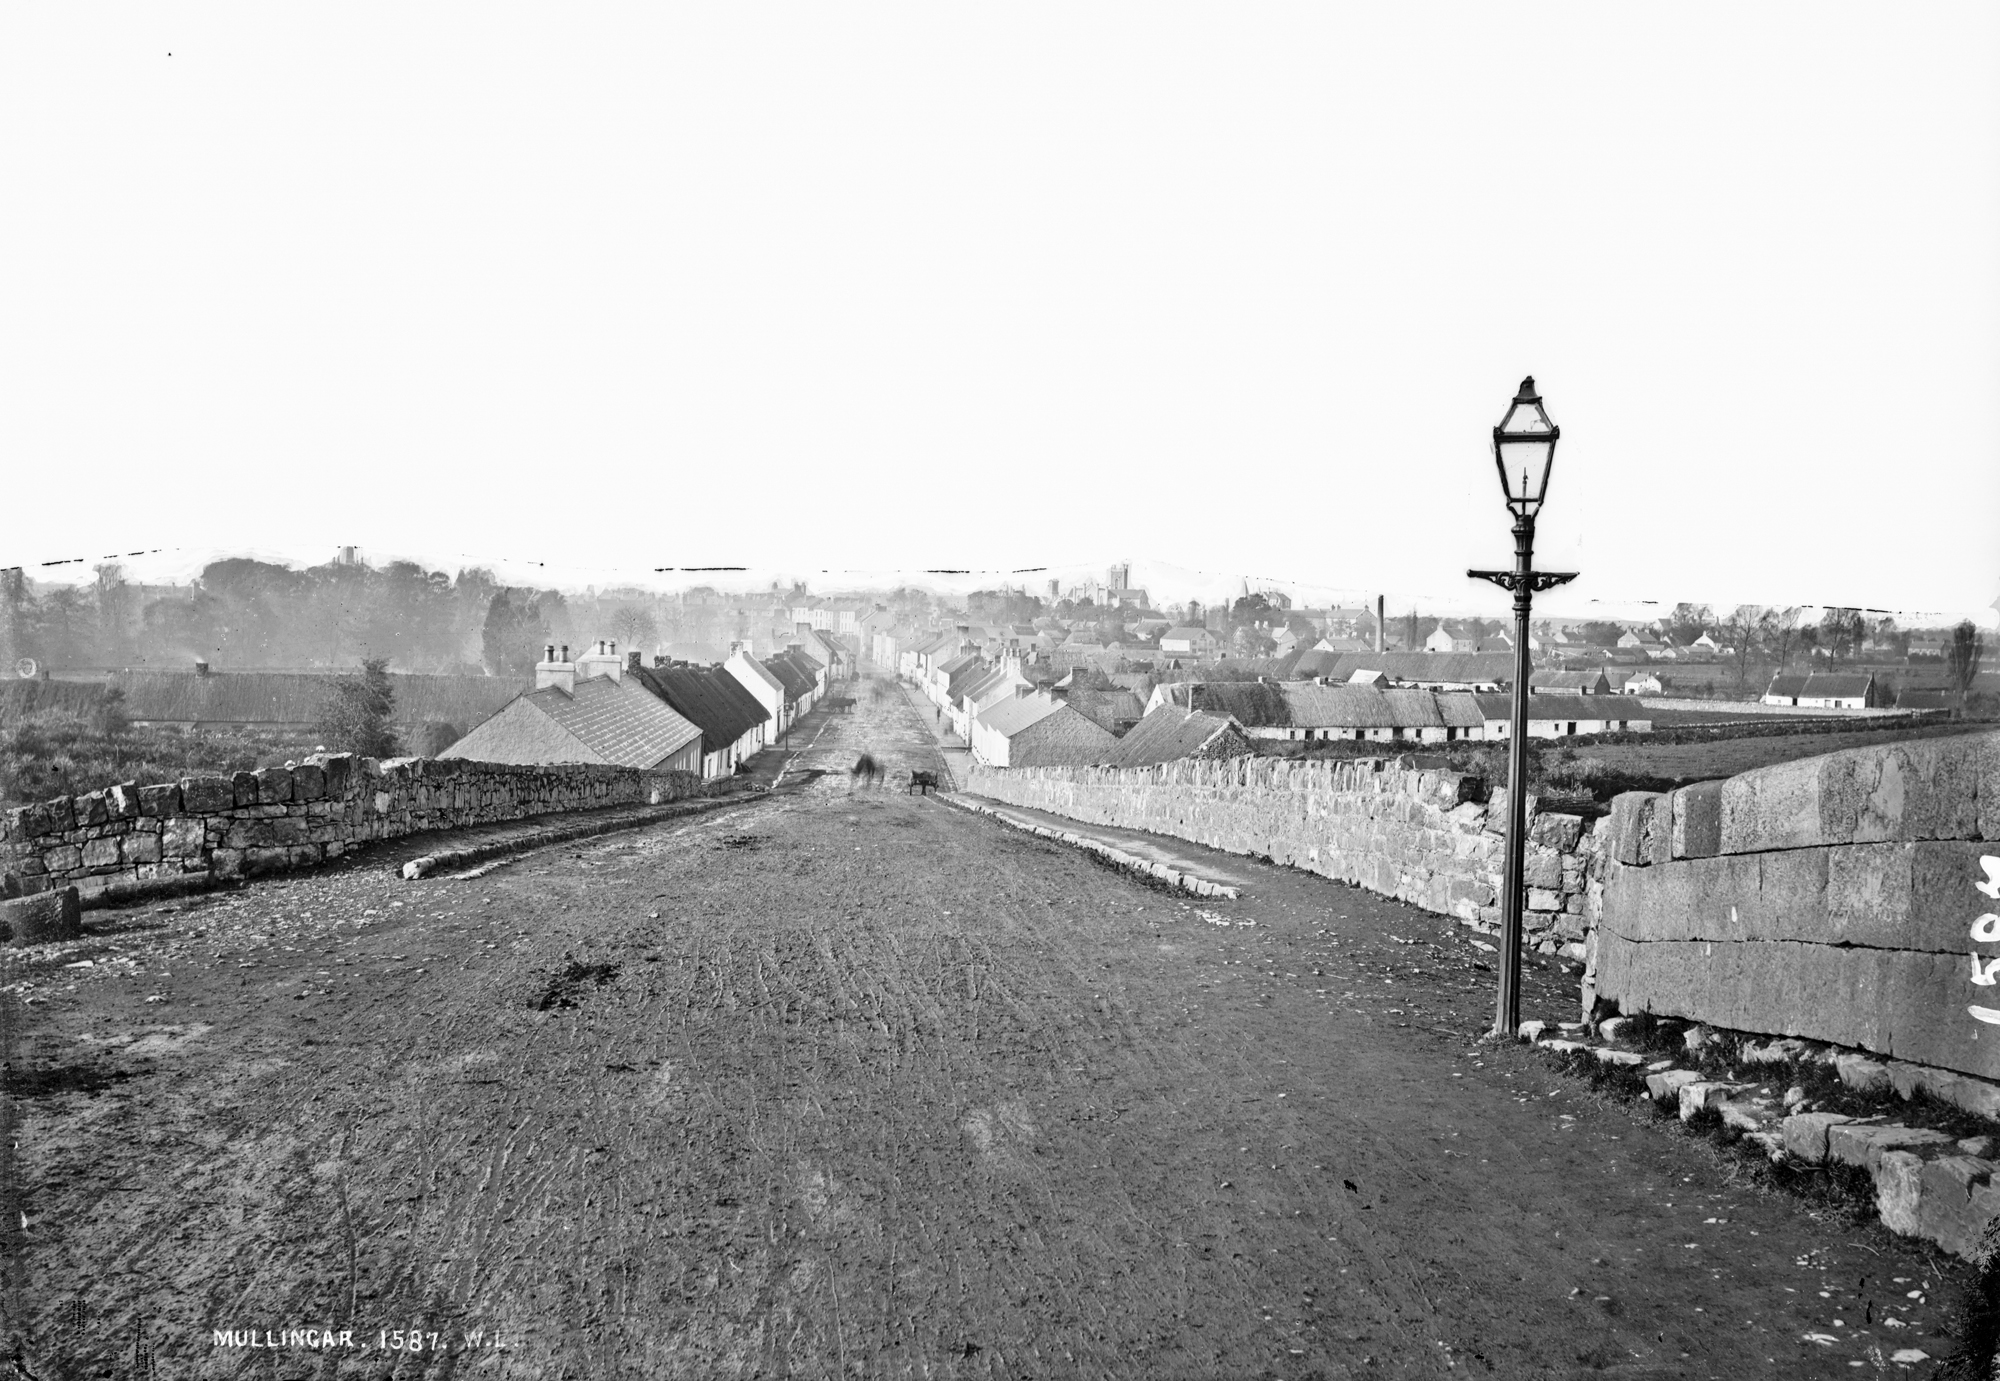 General View, Mullingar, Co. Westmeath